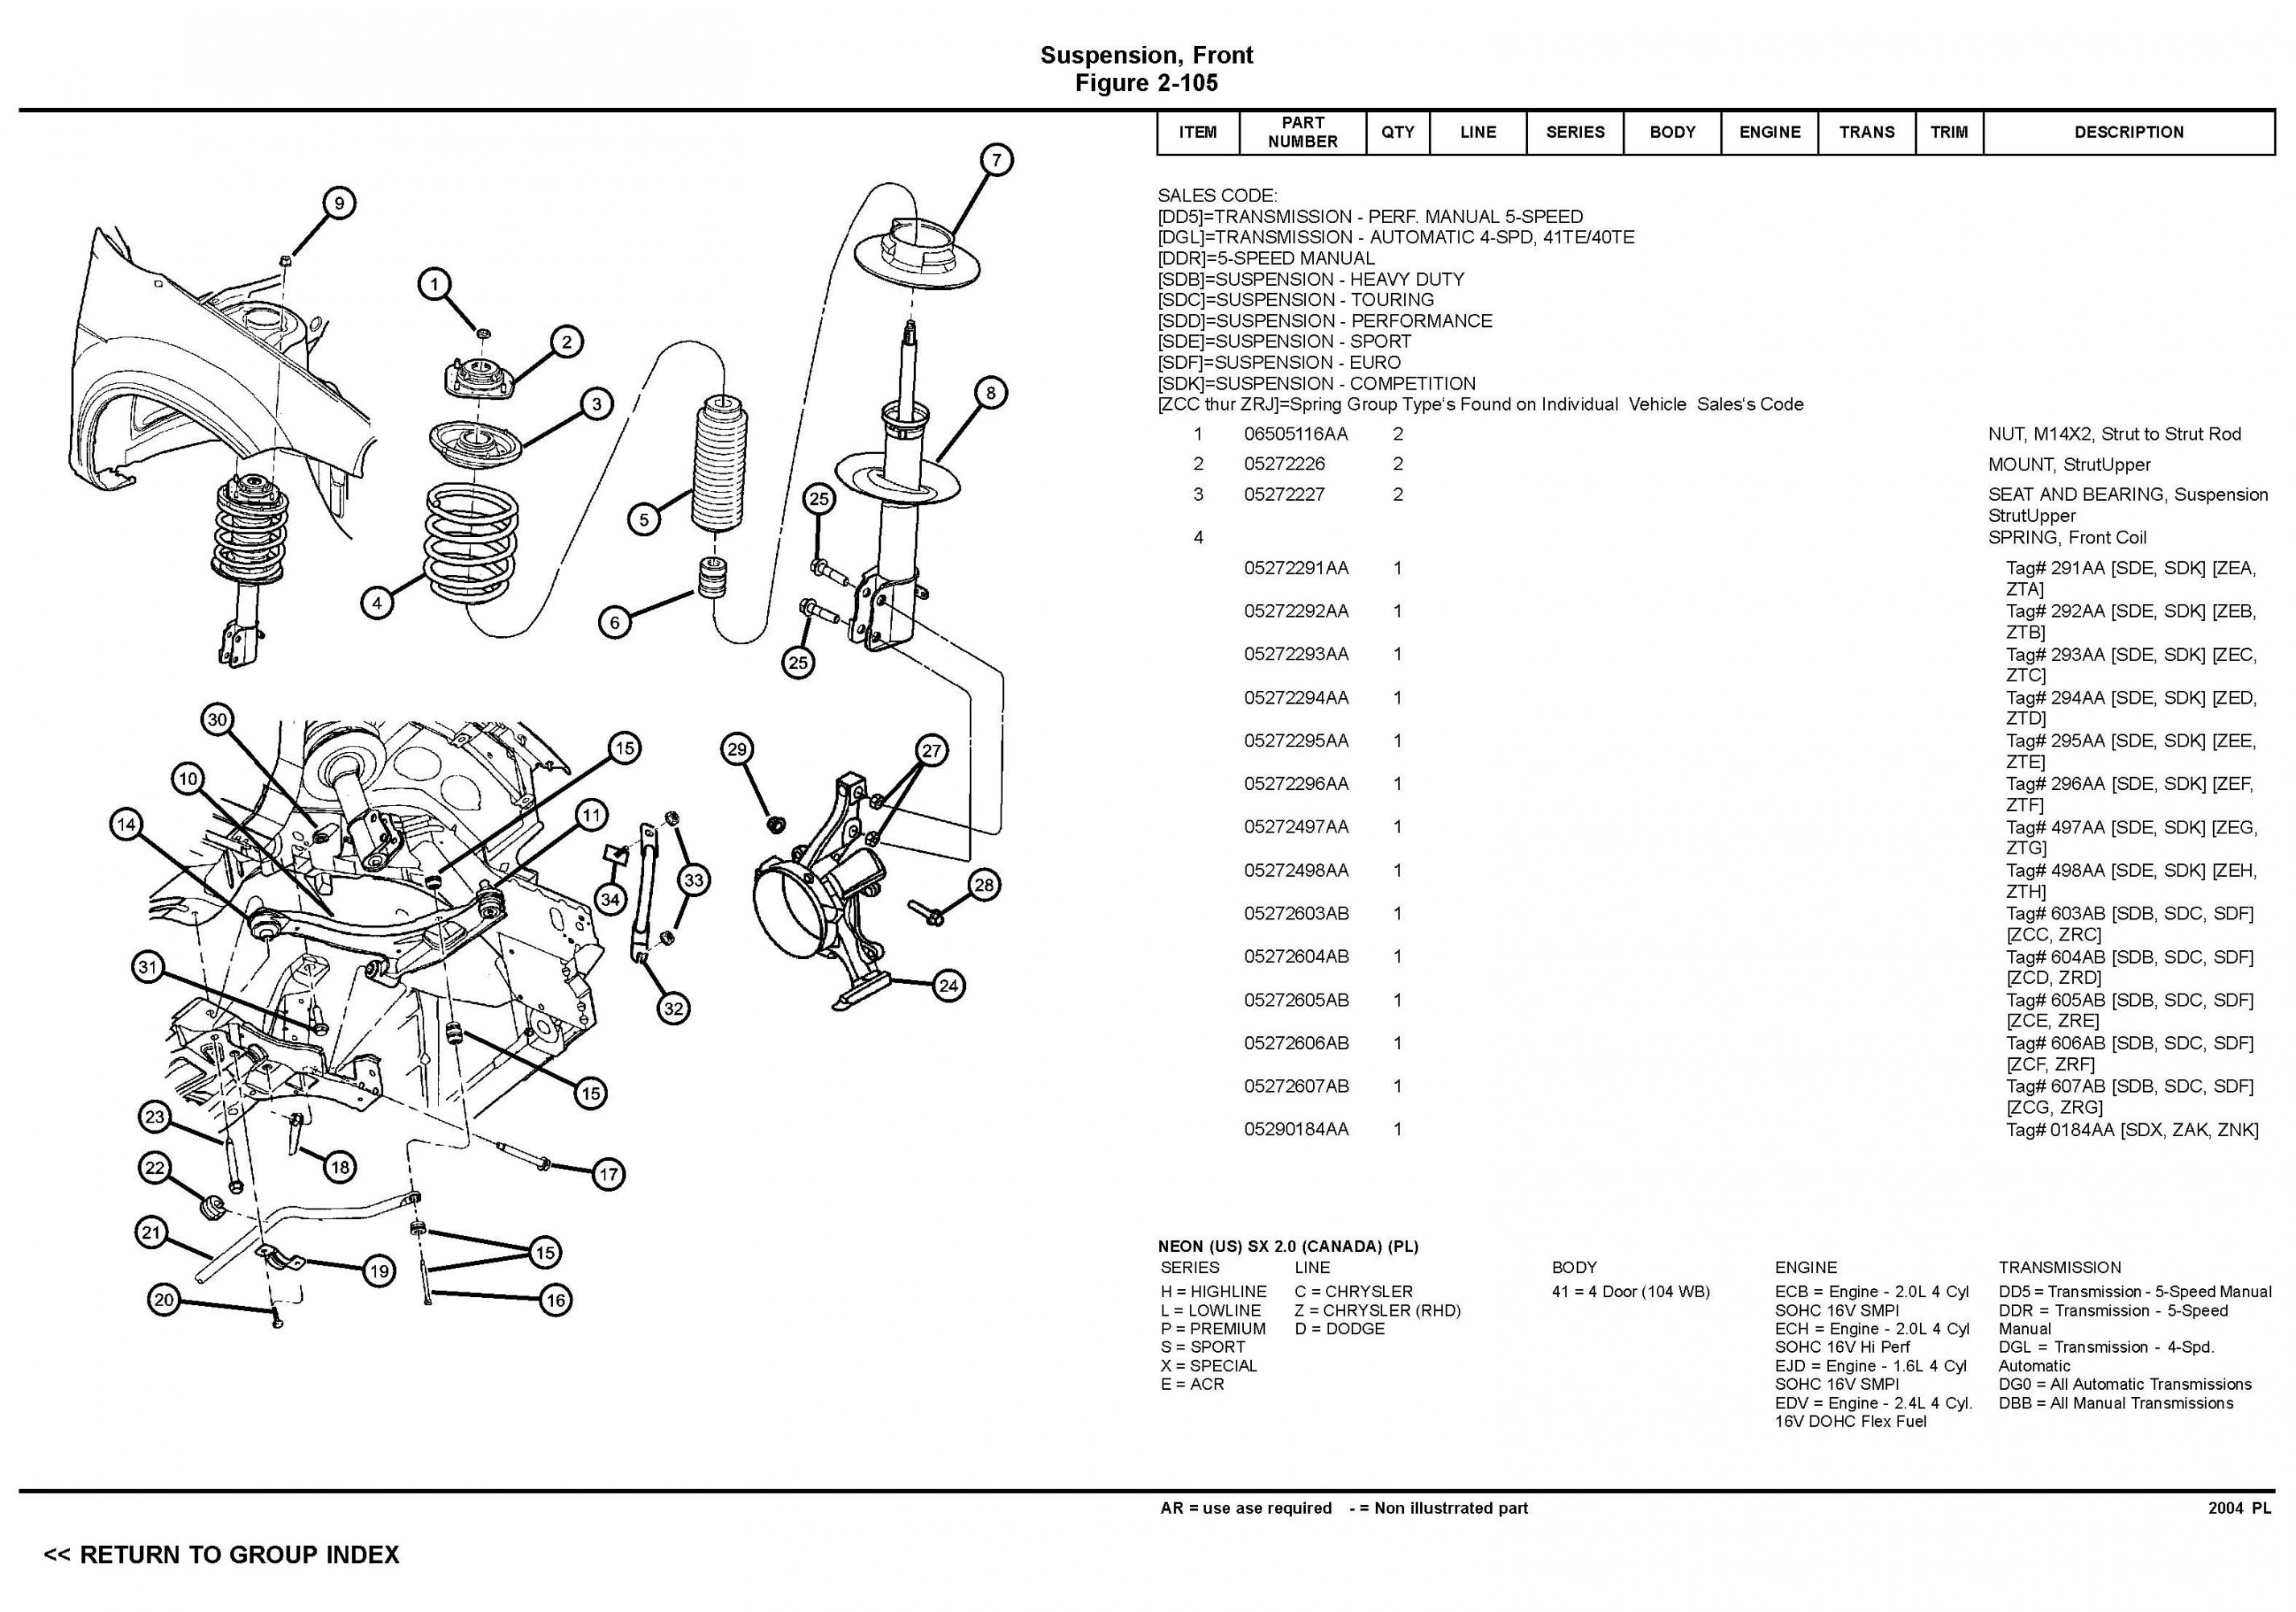 1997 subaru outback radio wiring diagram 1999 ford f250 2002 pt cruiser engine diagram, 2002, free image for user manual download